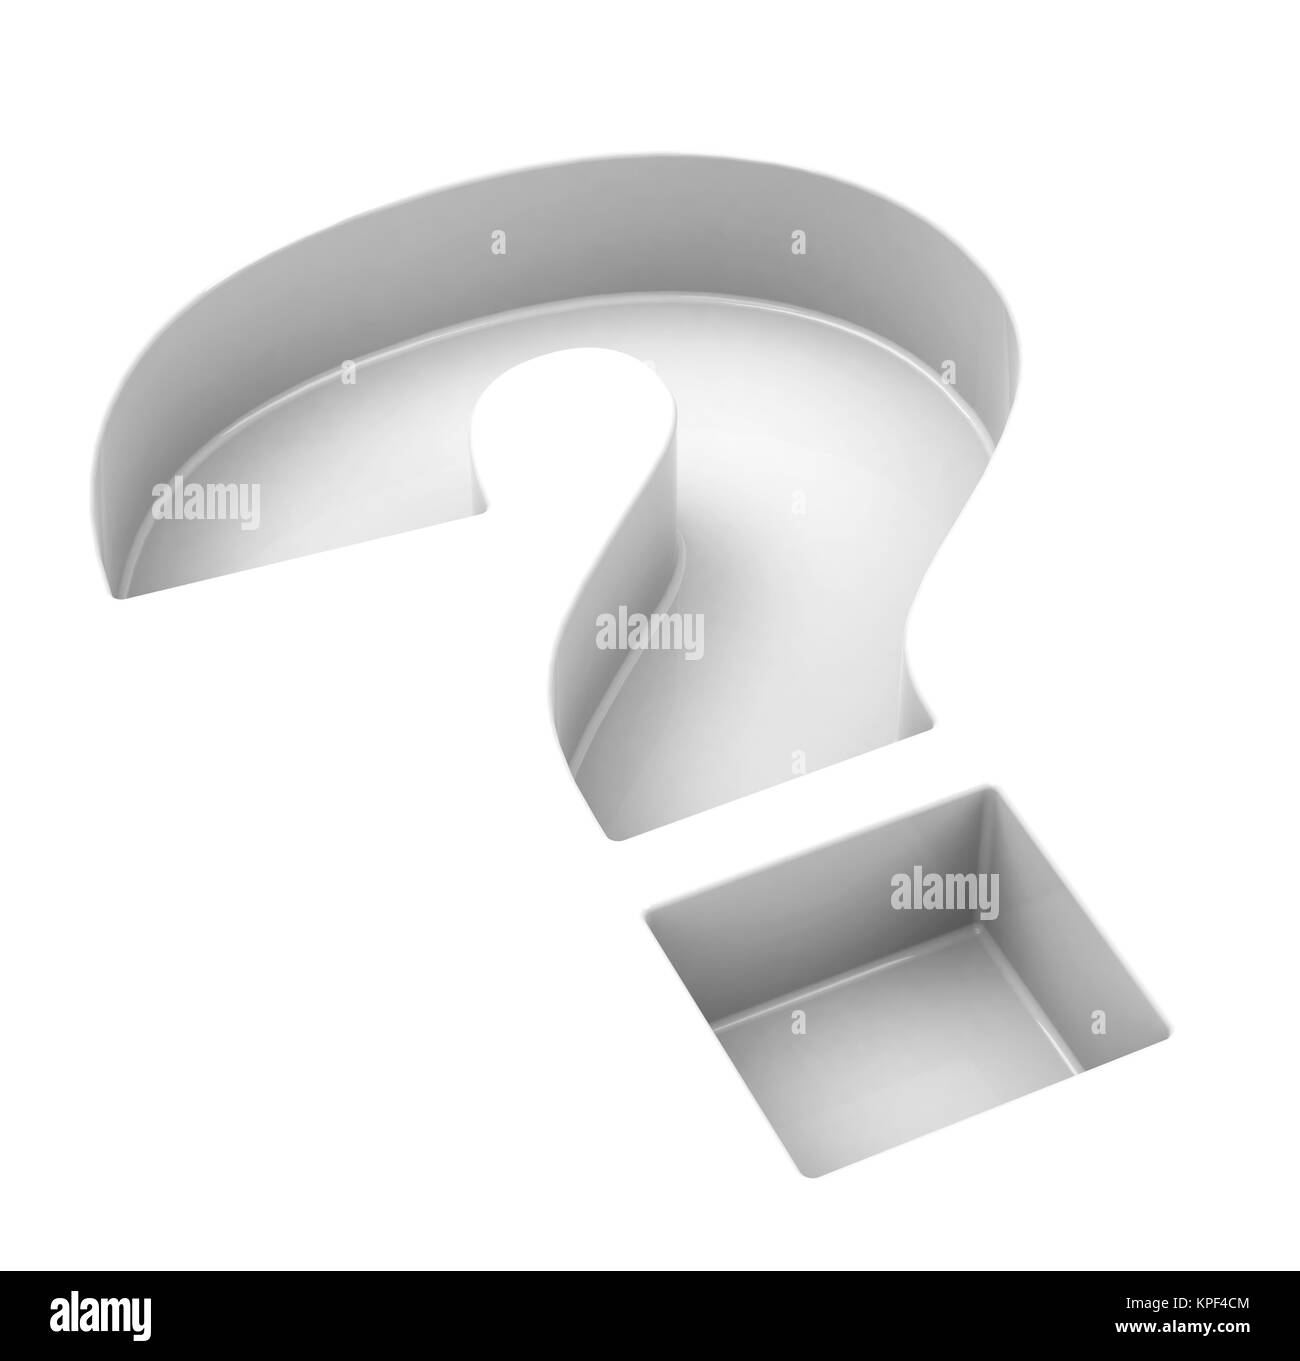 question mark - Stock Image